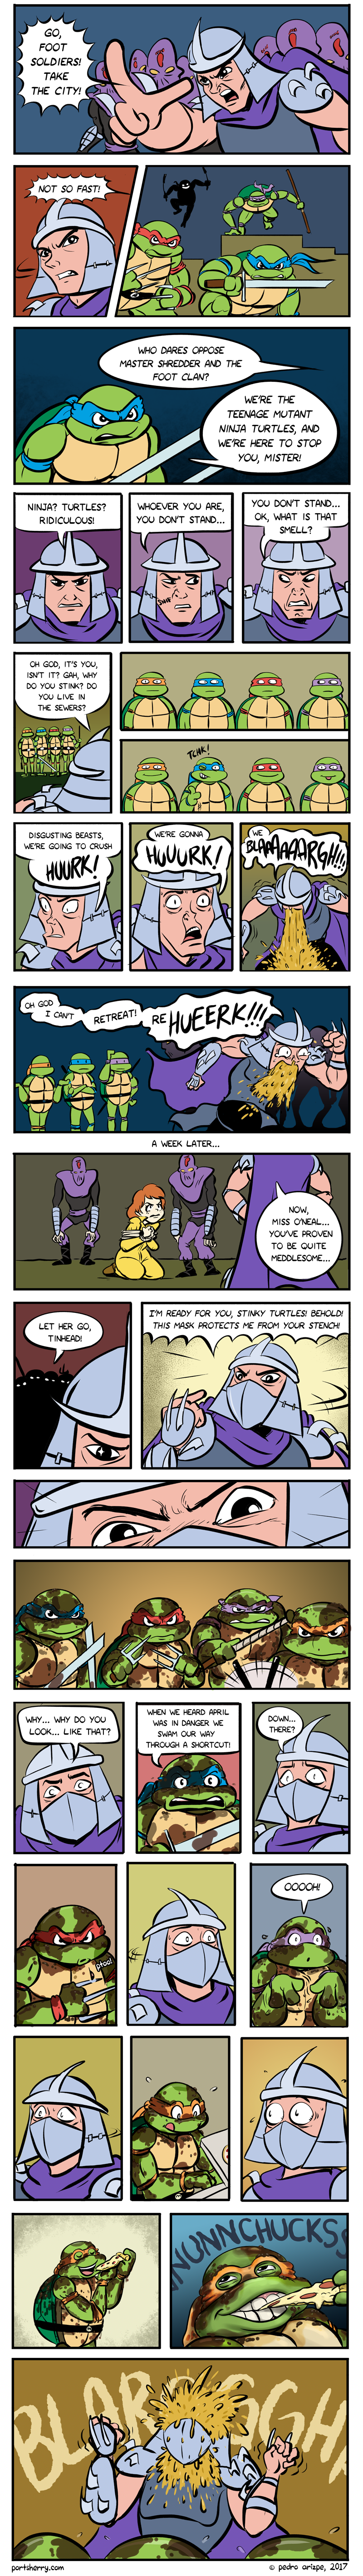 Shredder meets the turtles